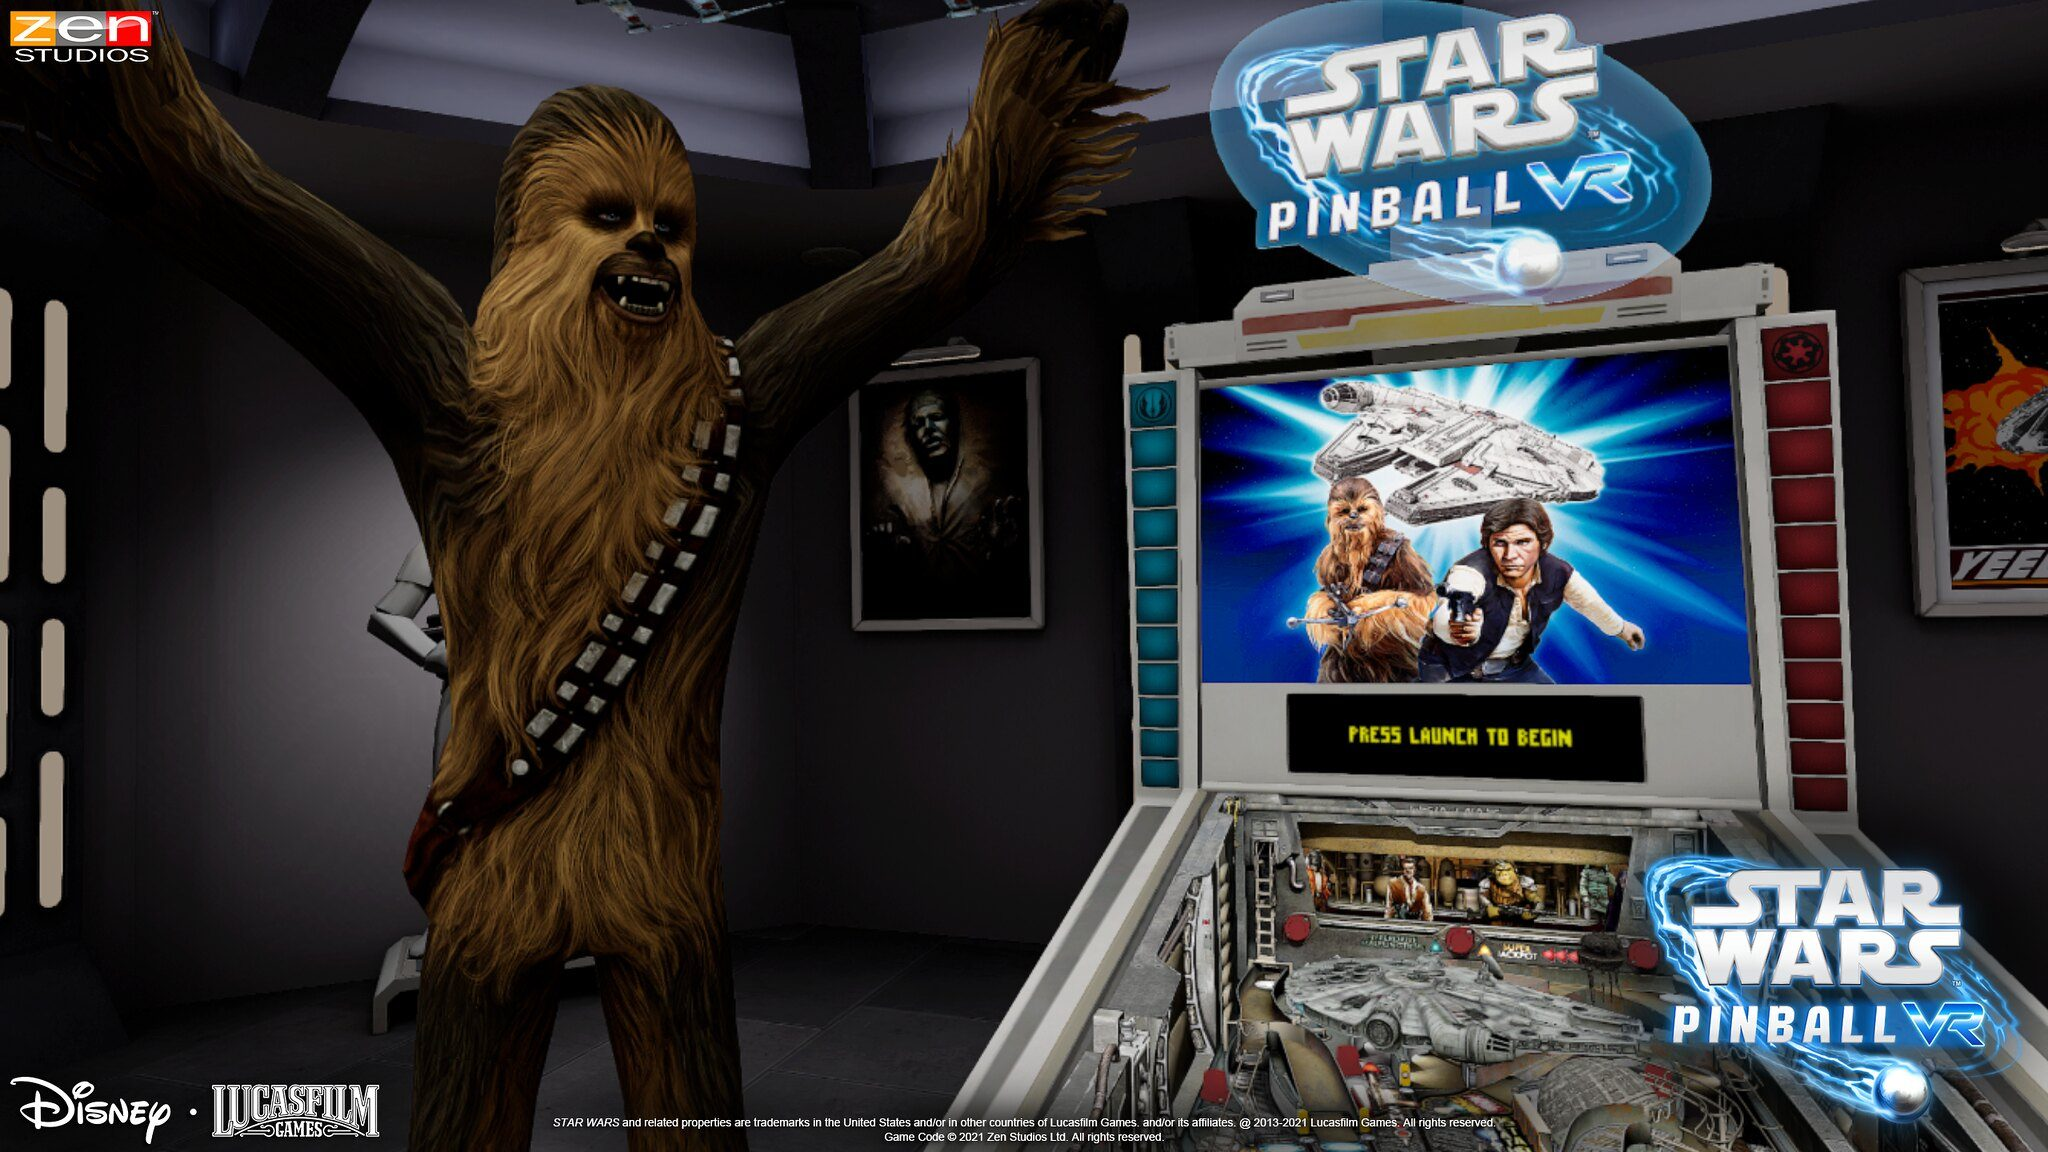 how-han-solo's-adventures-had-been-tailored-into-star-wars-pinball-vr's-latest-table